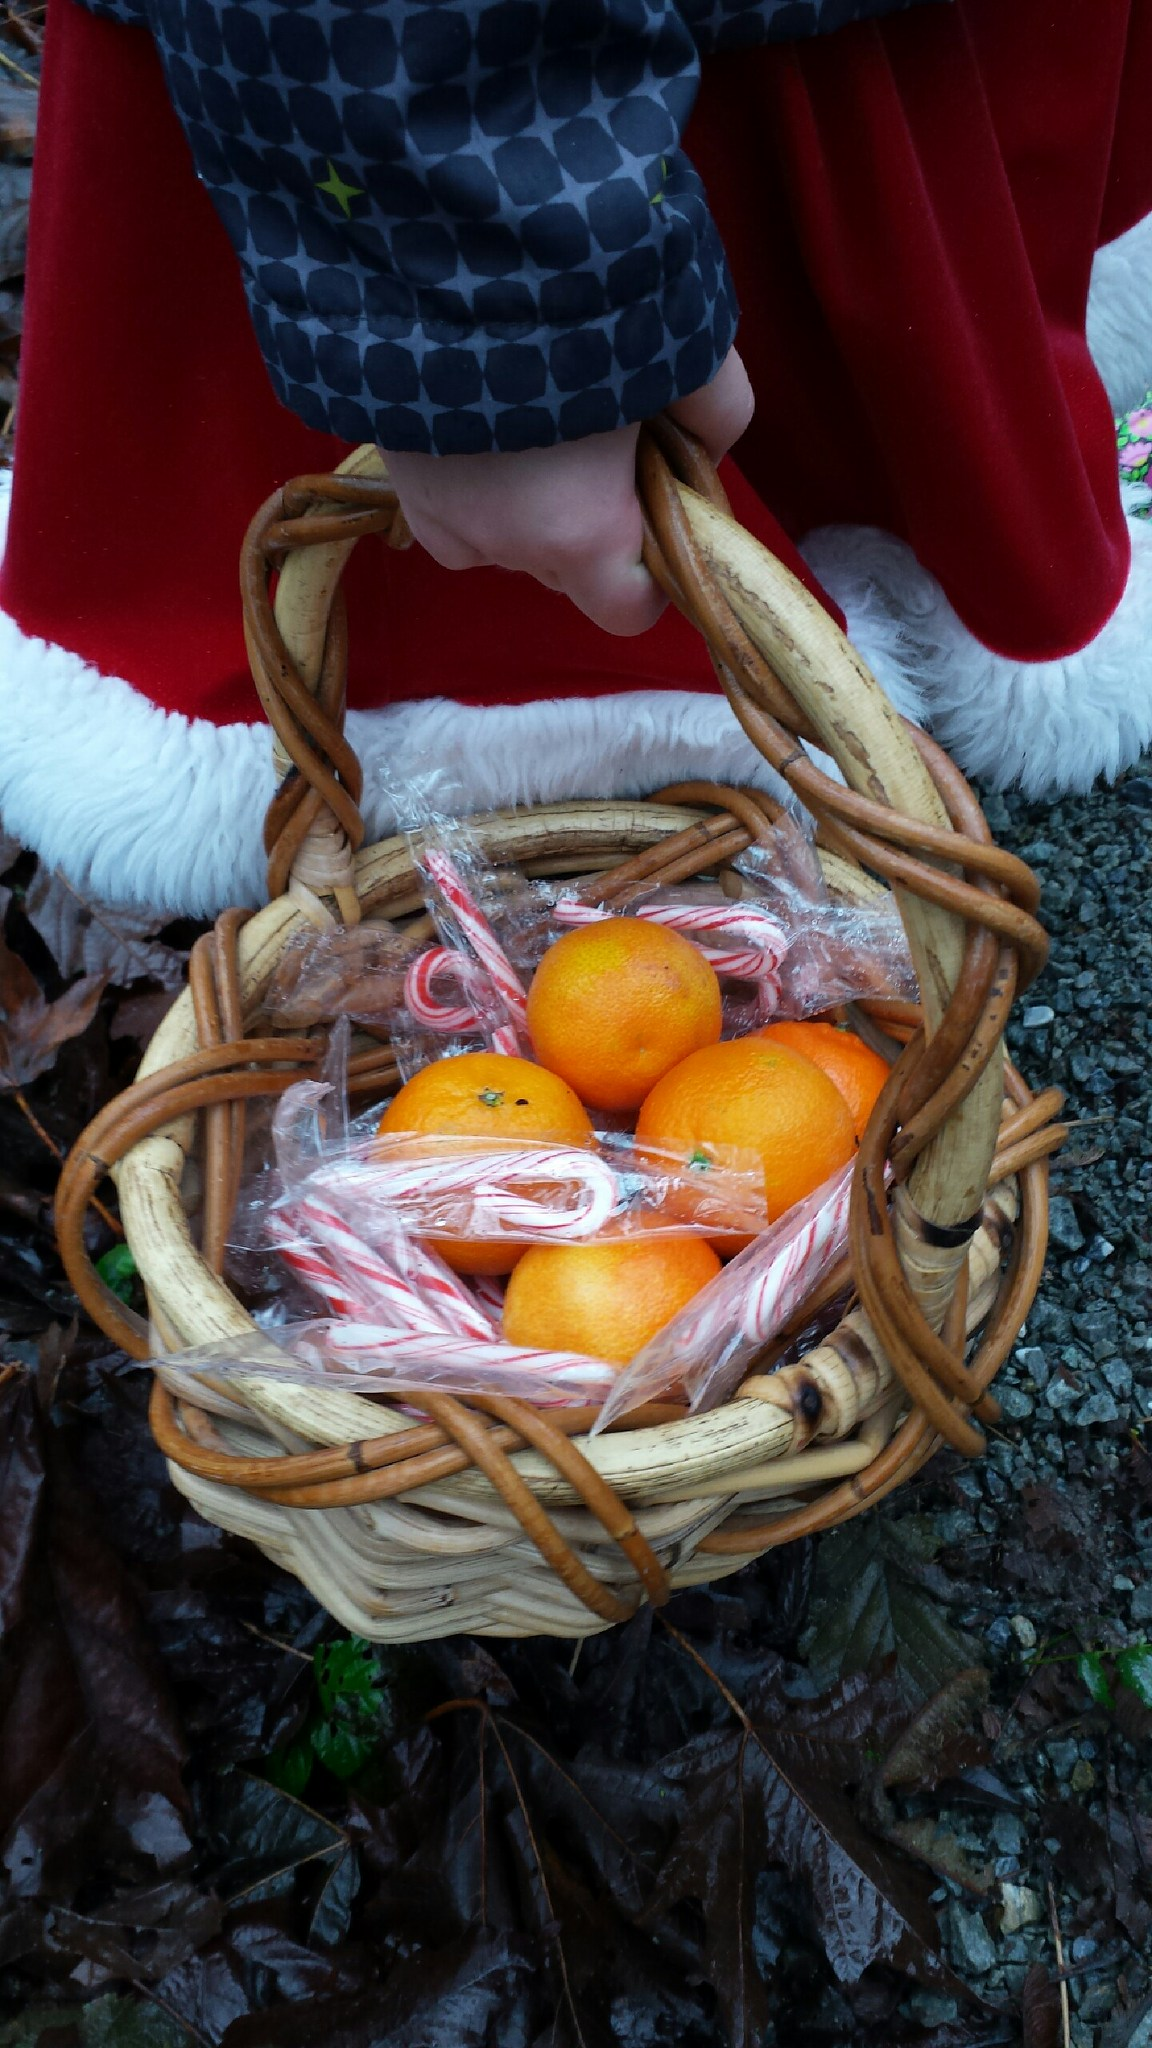 Candy Canes & clementines are treasures found within CHESTY Greenspace in December.